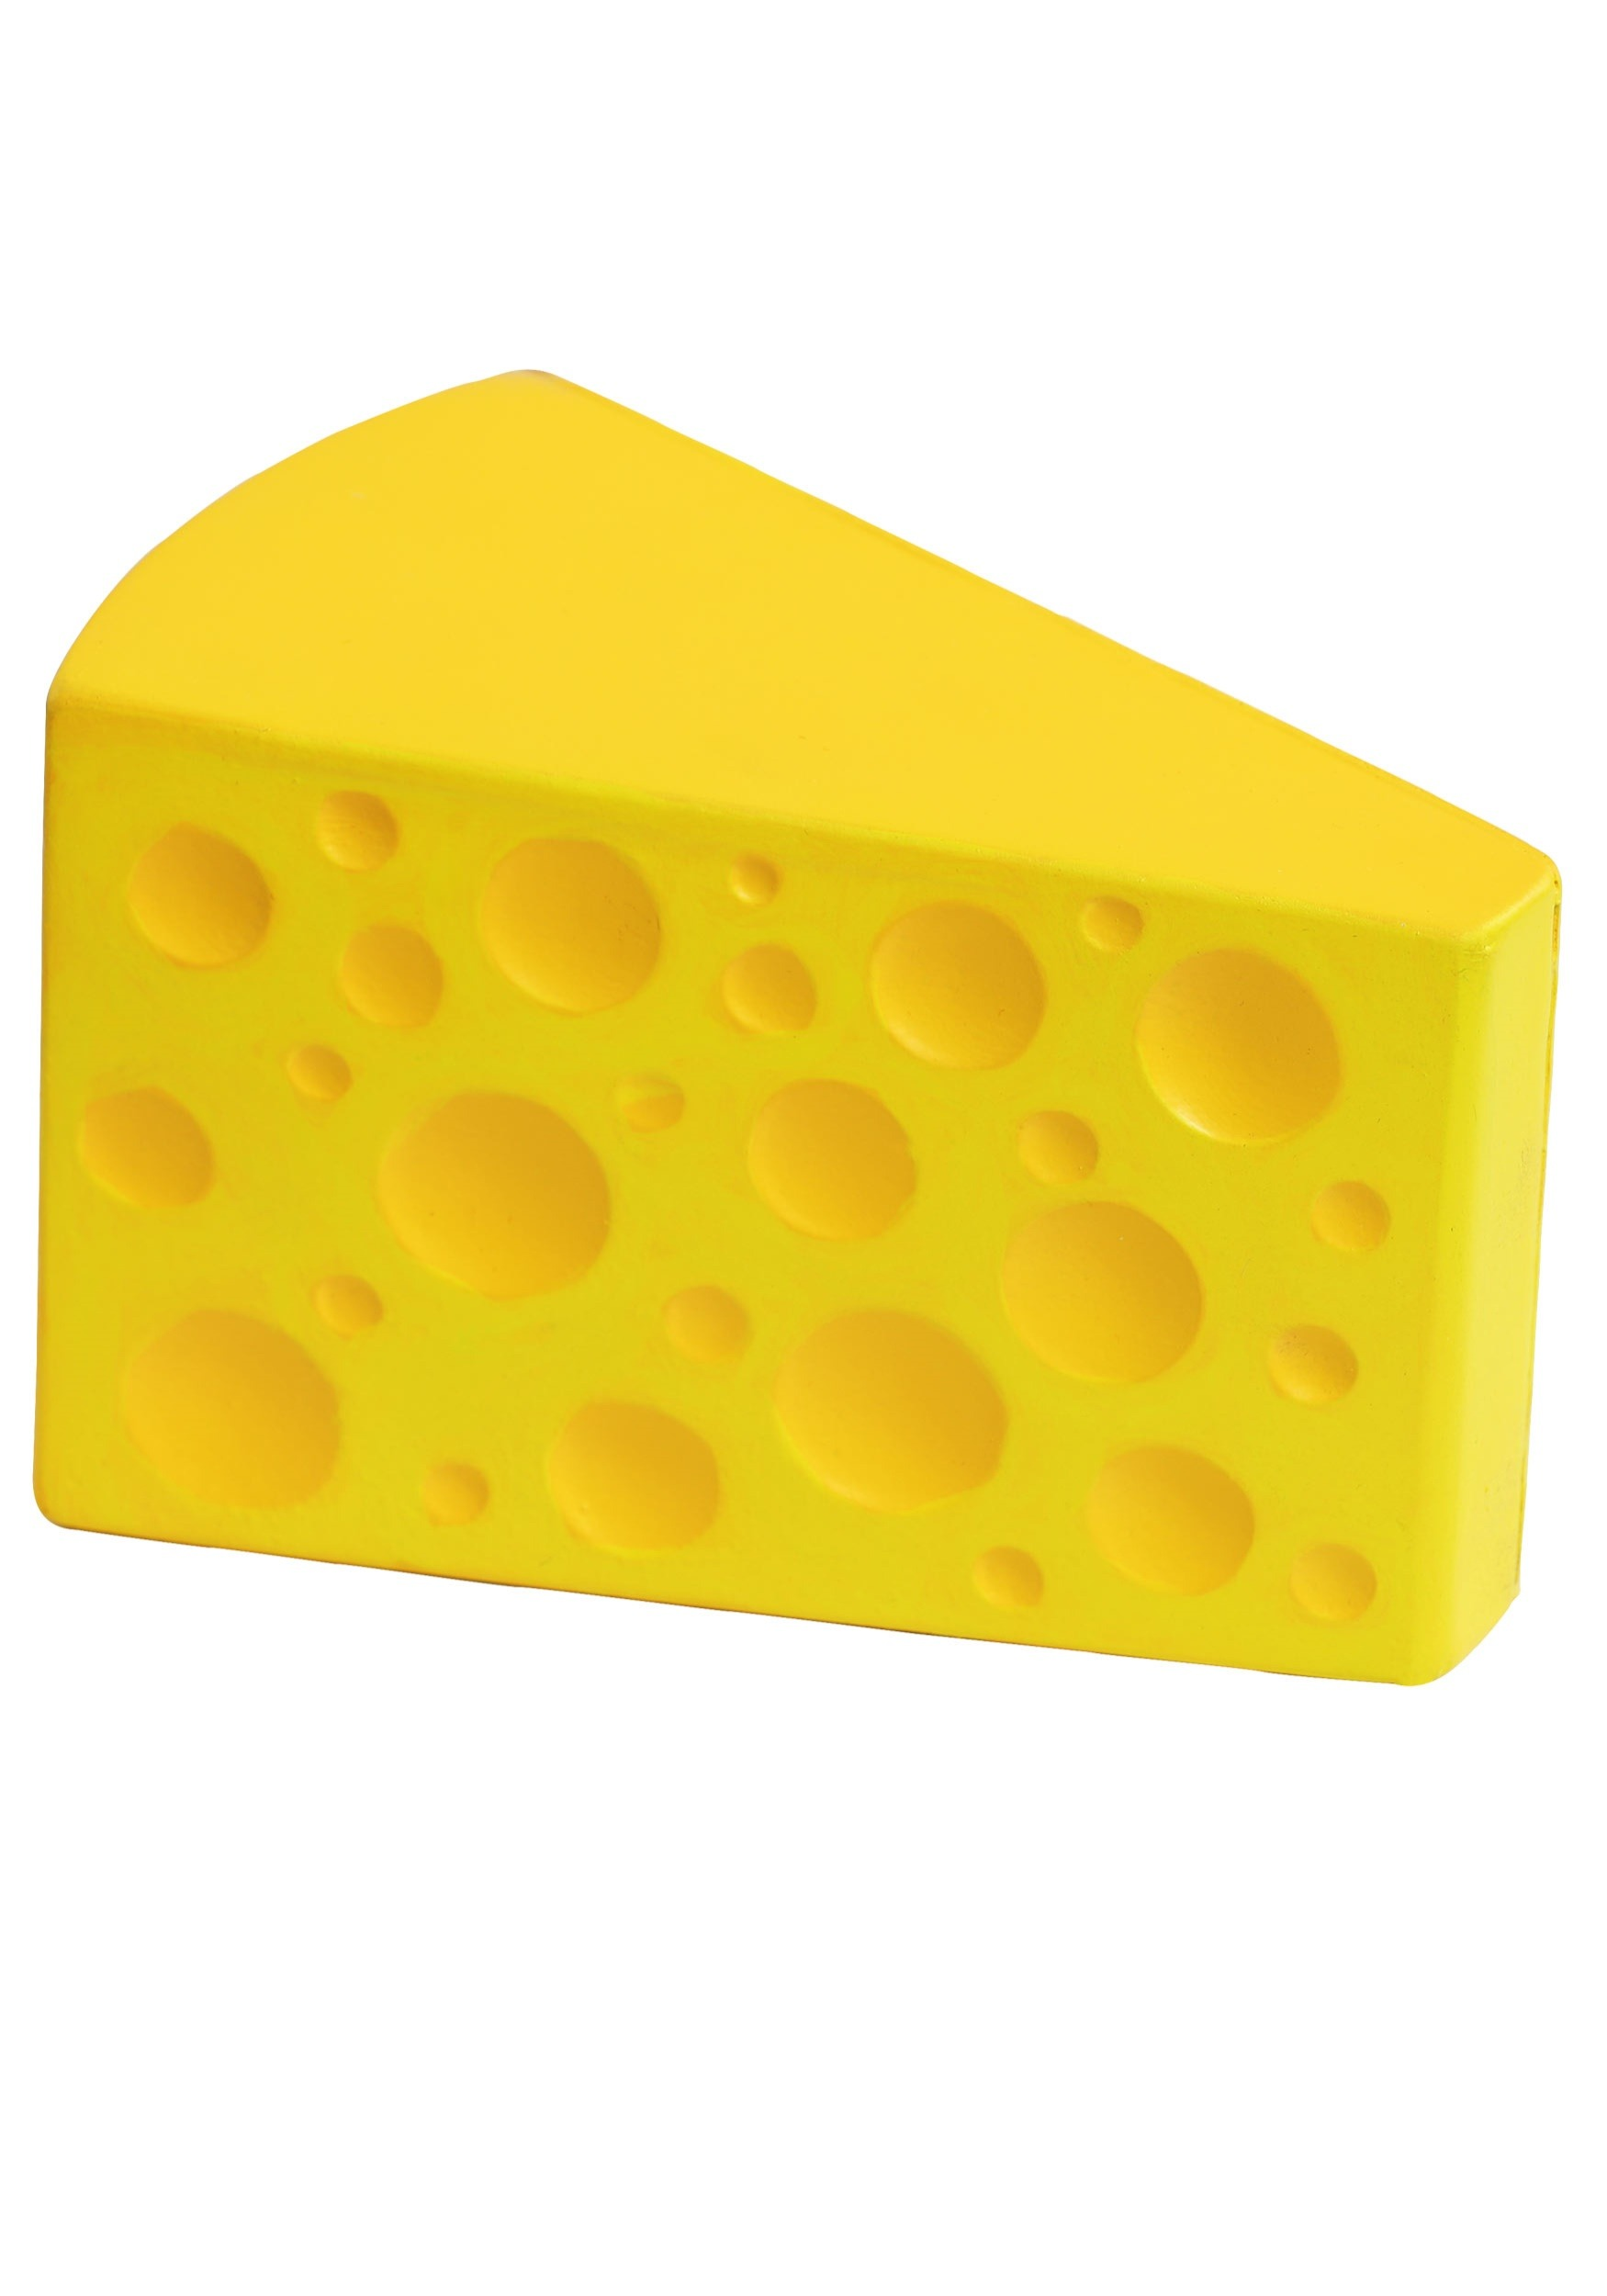 Foam Block of Cheese